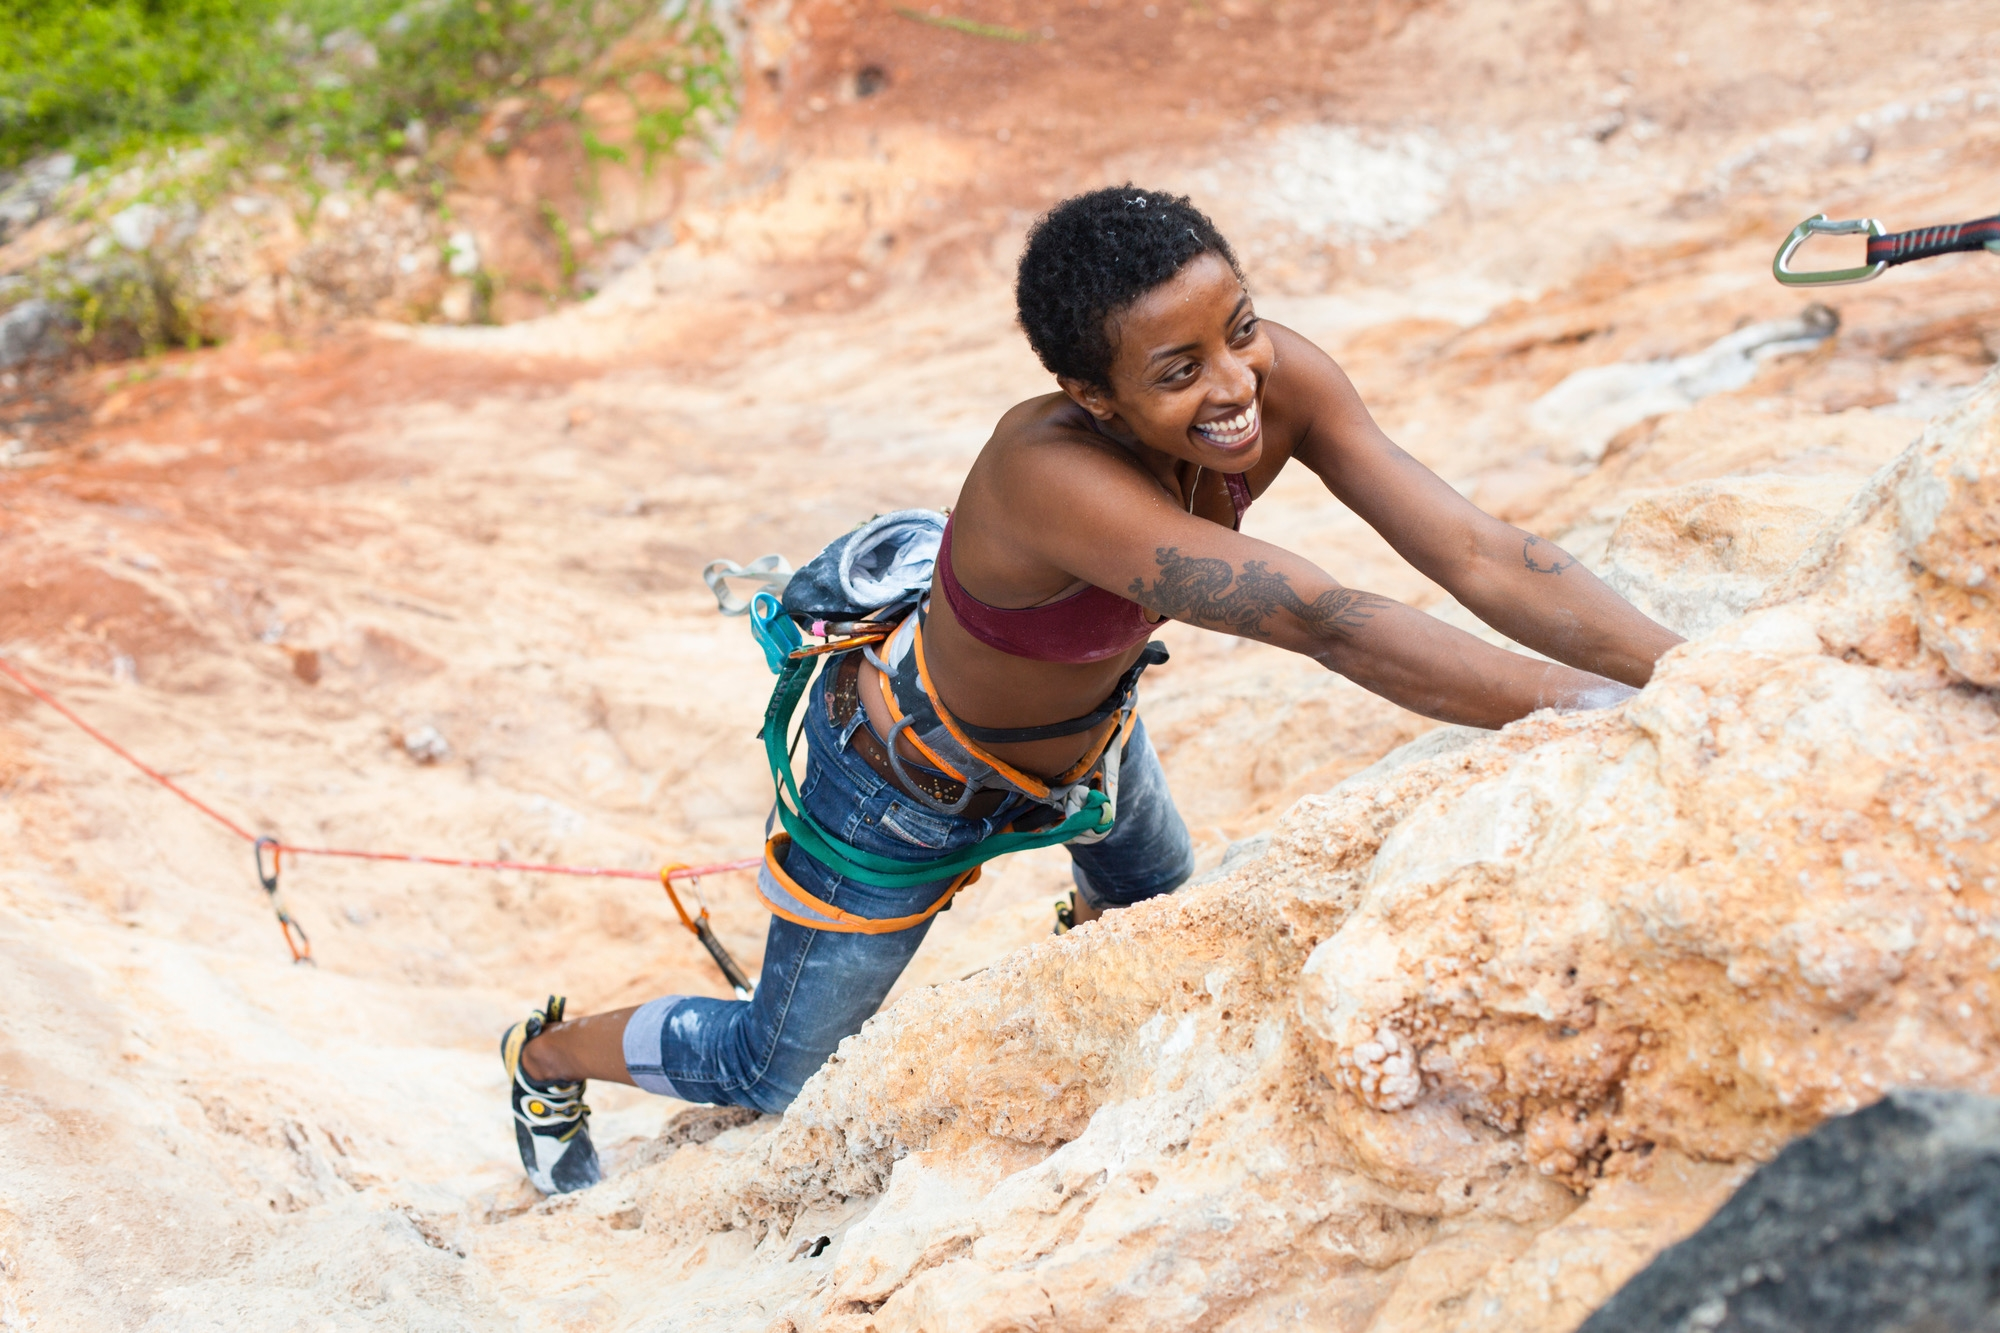 Abby Dione climbs Obstinada (5.11) in San German, Puerto Rico.